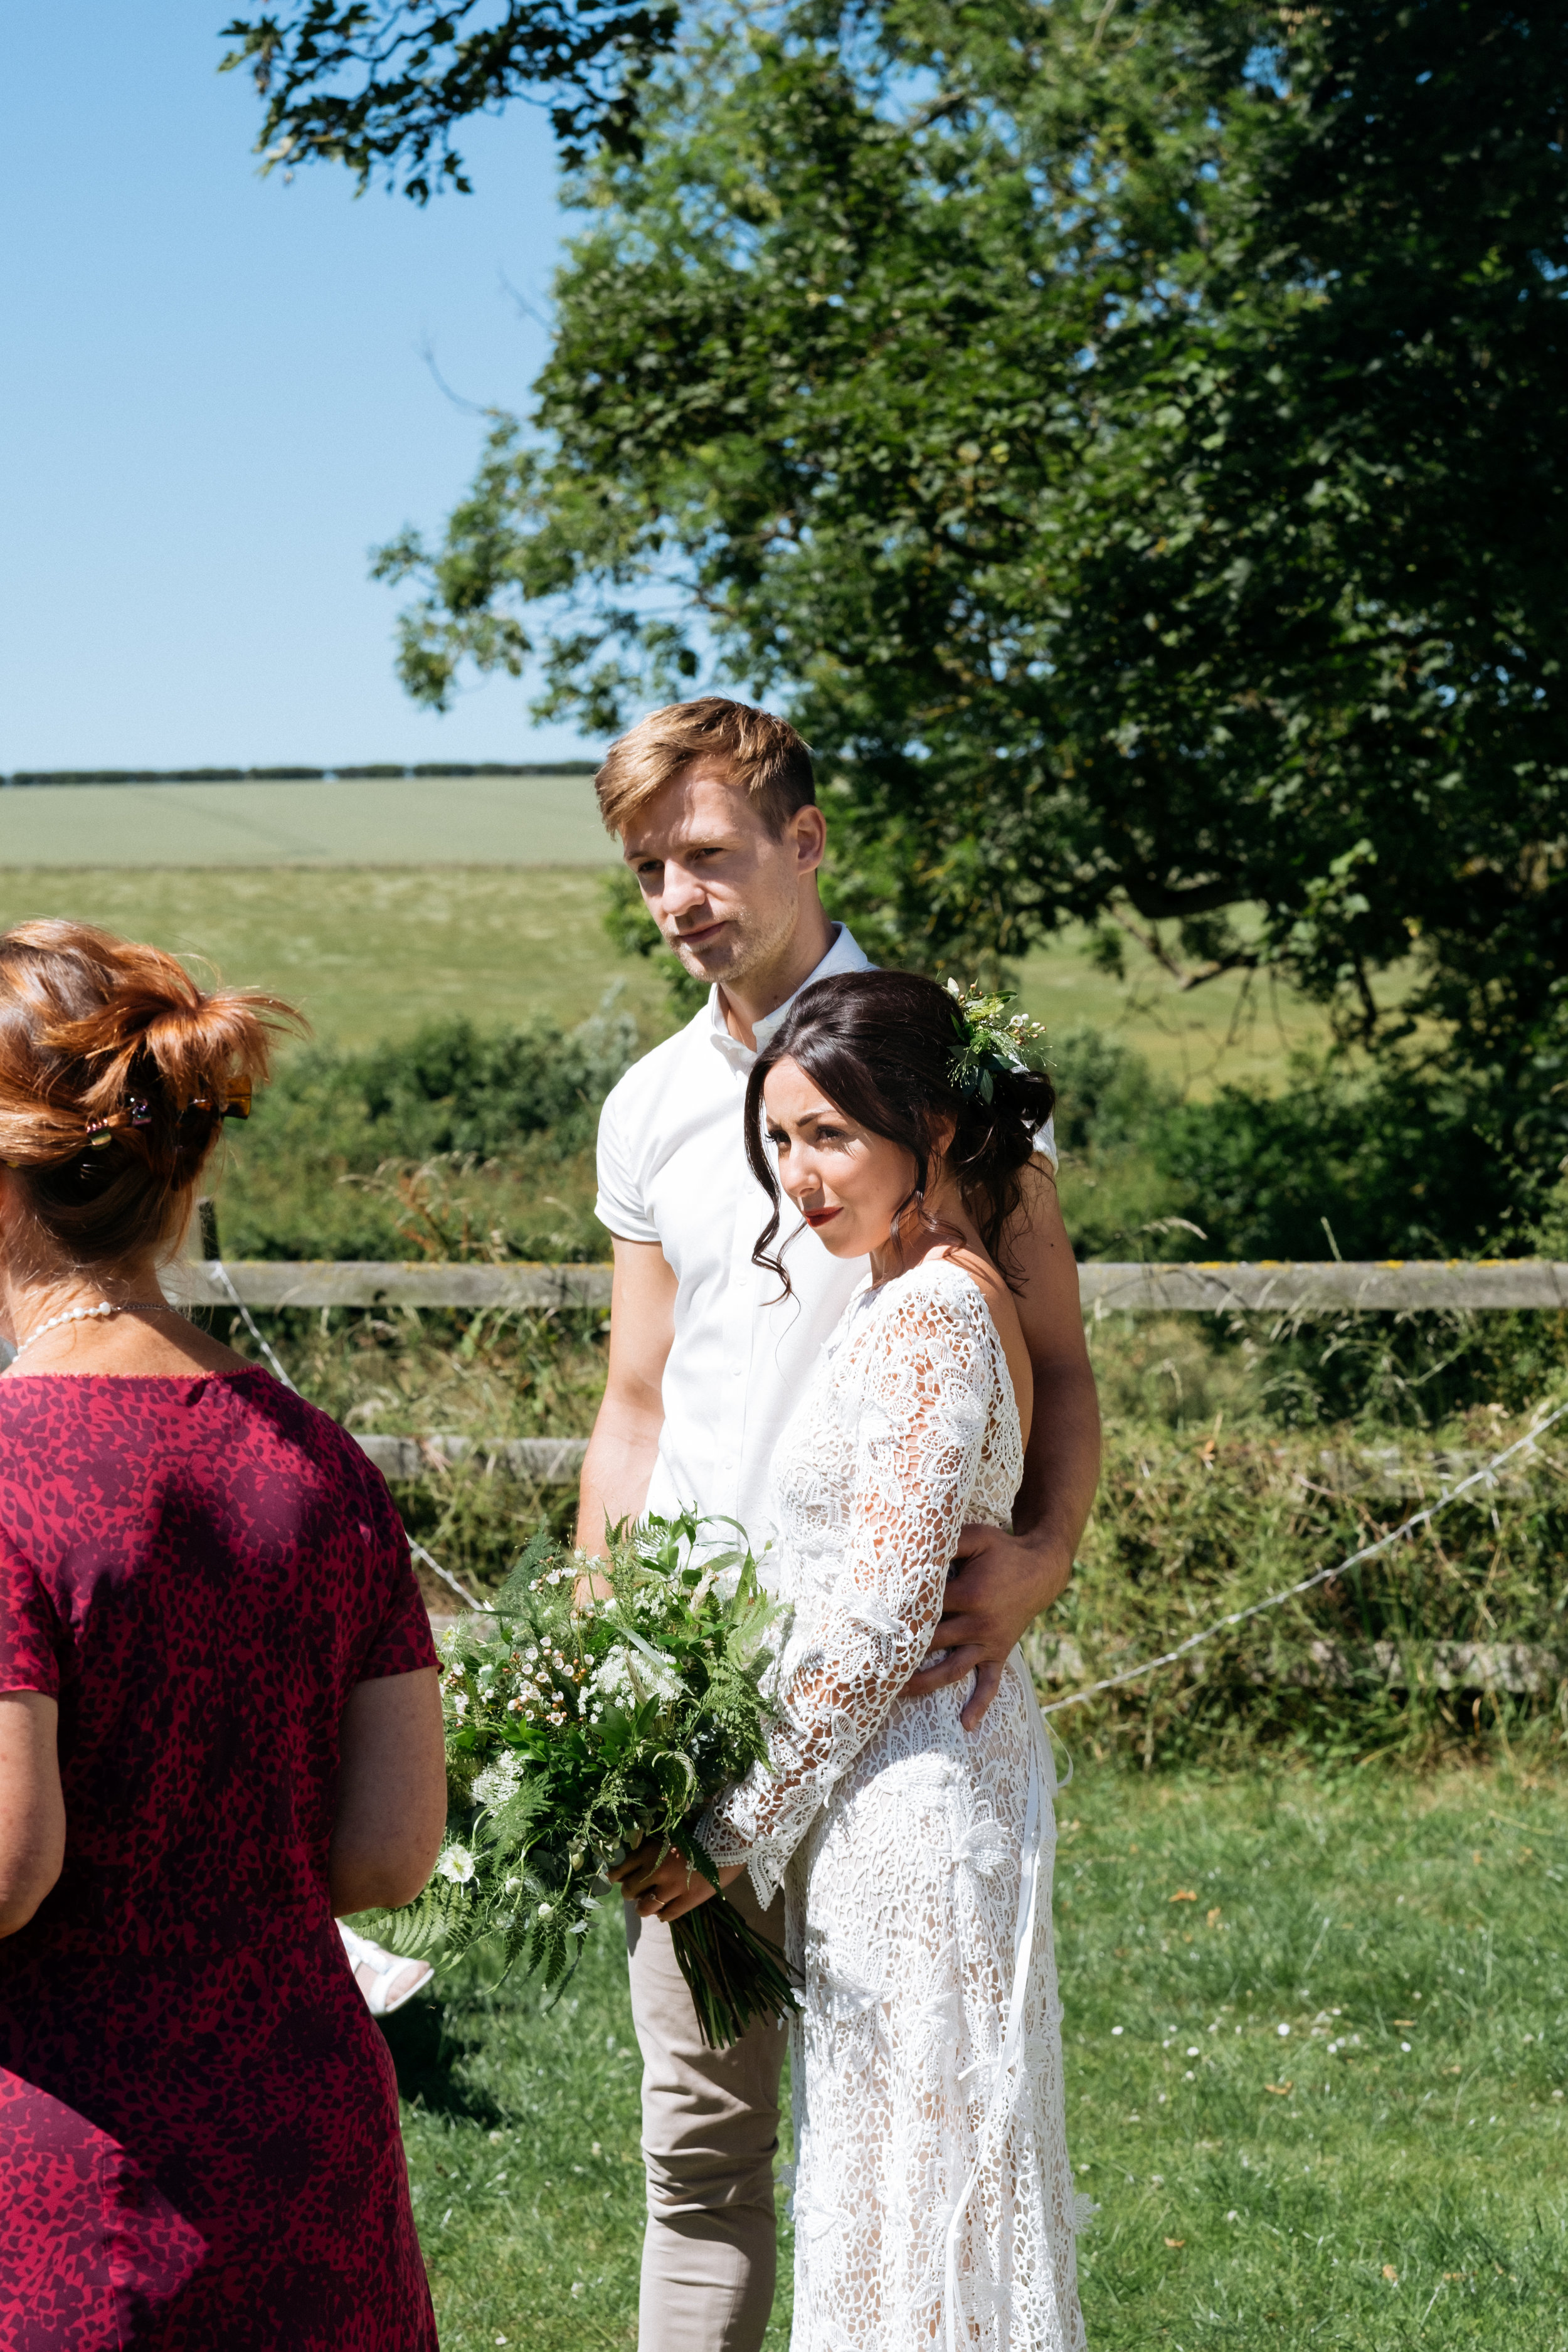 Bride and groom getting married in outdoor wedding ceremony in Lincolnshire countryside